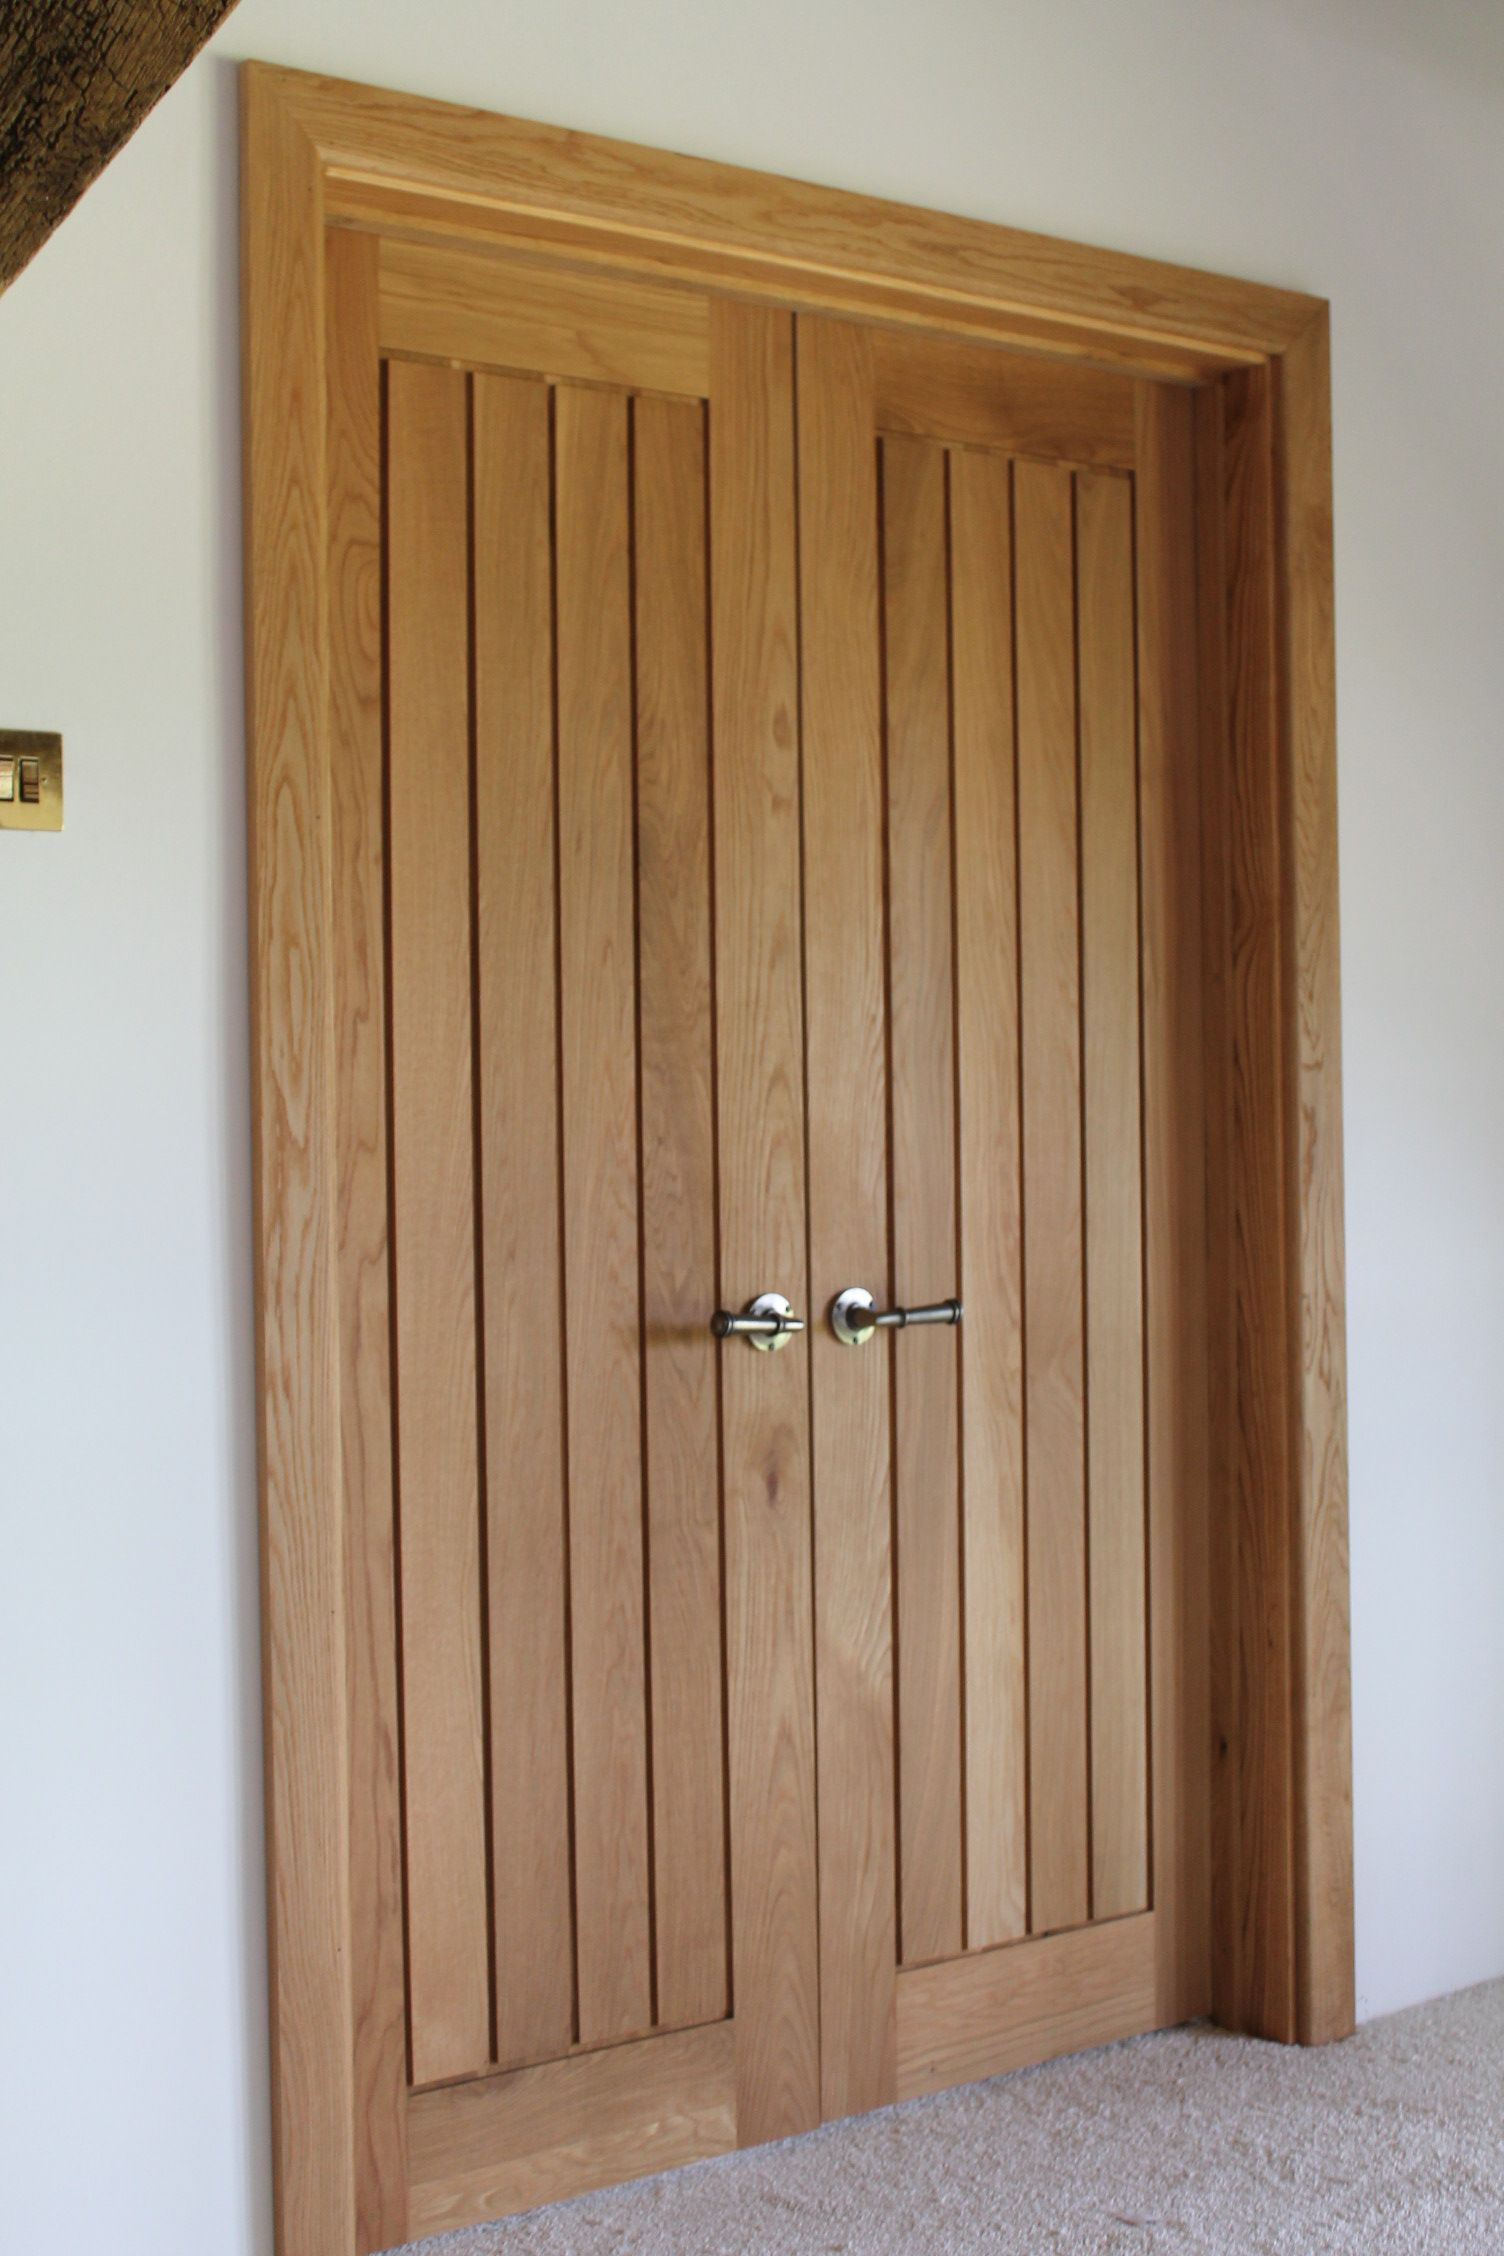 Wooden Internal Doors With: Wooden Doors, Double Doors